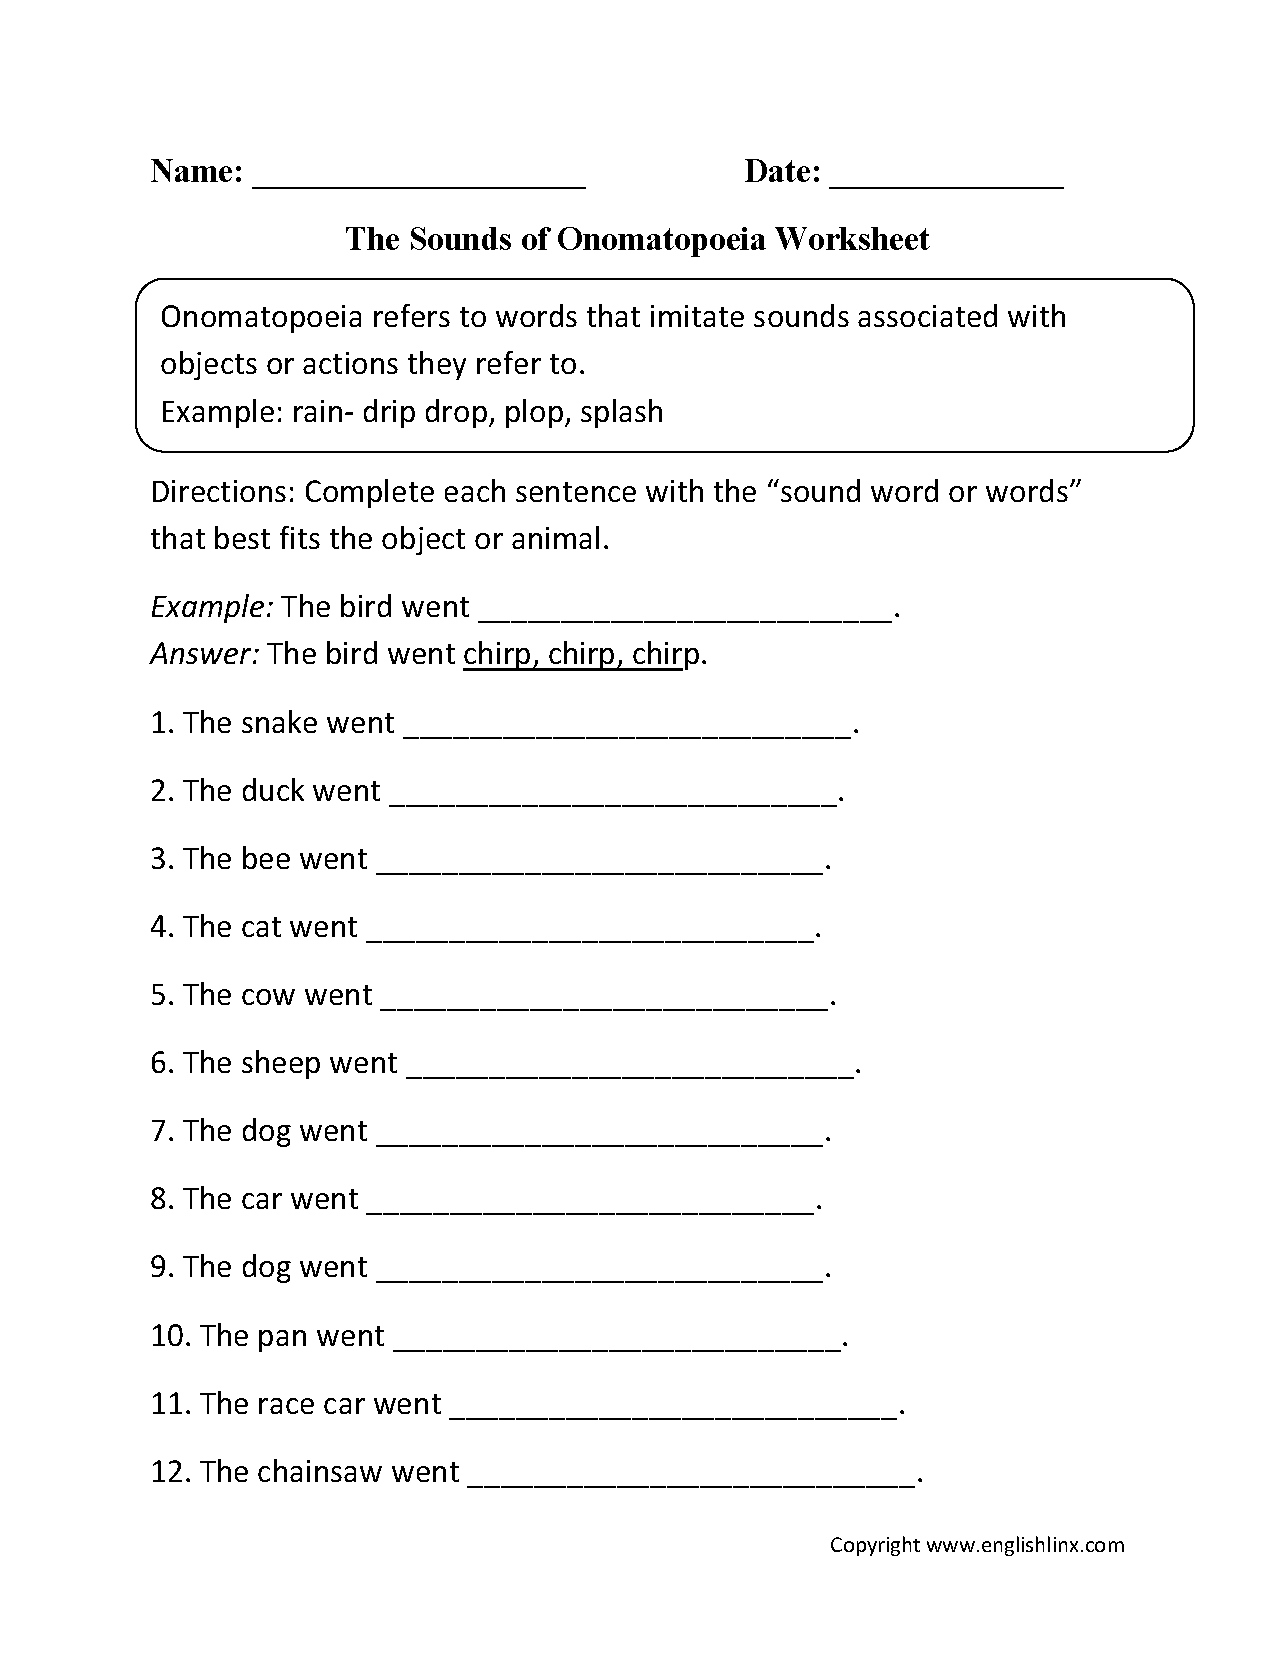 Aldiablosus  Unique Englishlinxcom  Onomatopoeia Worksheets With Luxury Worksheet With Beauteous Numbers On A Number Line Worksheet Also Addition And Subtraction Of Mixed Numbers Worksheets In Addition Rd Grade Mental Math Worksheets And Prefixes Worksheets For Rd Grade As Well As Time Intervals Worksheets Additionally Hello Kitty Worksheets From Englishlinxcom With Aldiablosus  Luxury Englishlinxcom  Onomatopoeia Worksheets With Beauteous Worksheet And Unique Numbers On A Number Line Worksheet Also Addition And Subtraction Of Mixed Numbers Worksheets In Addition Rd Grade Mental Math Worksheets From Englishlinxcom